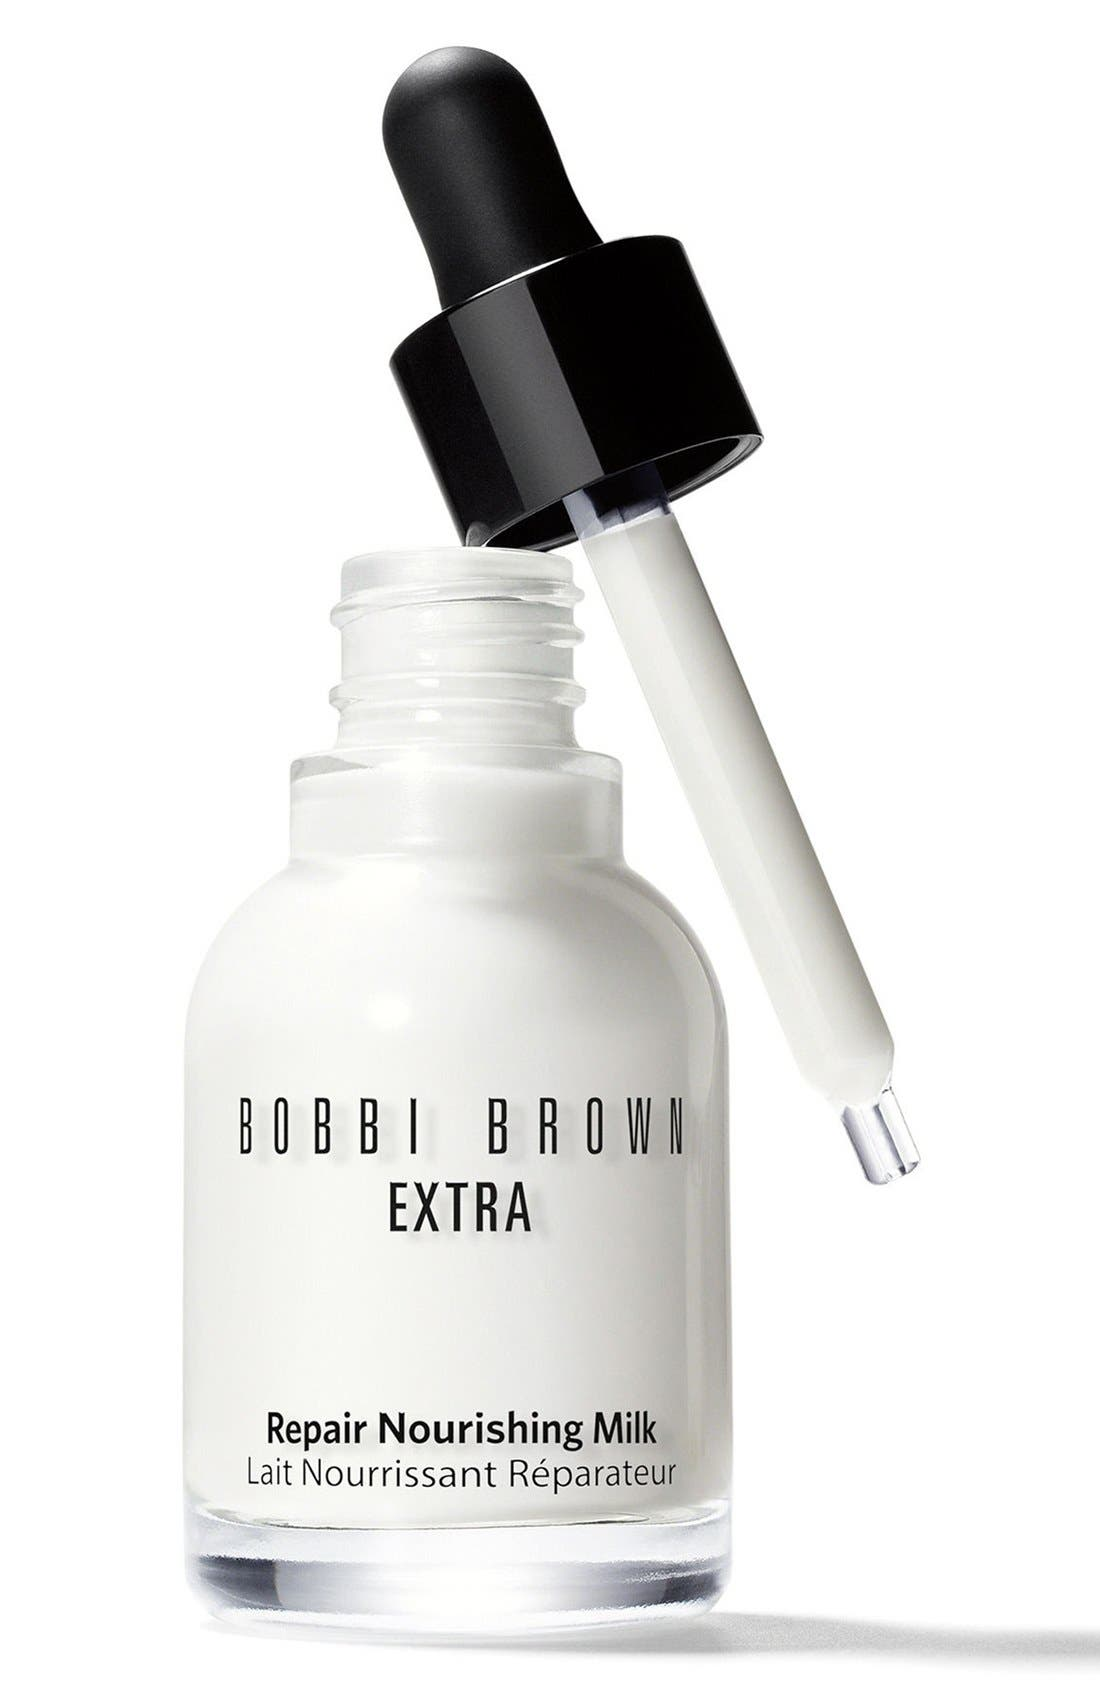 Bobbi Brown 'Extra' Repair Nourishing Milk